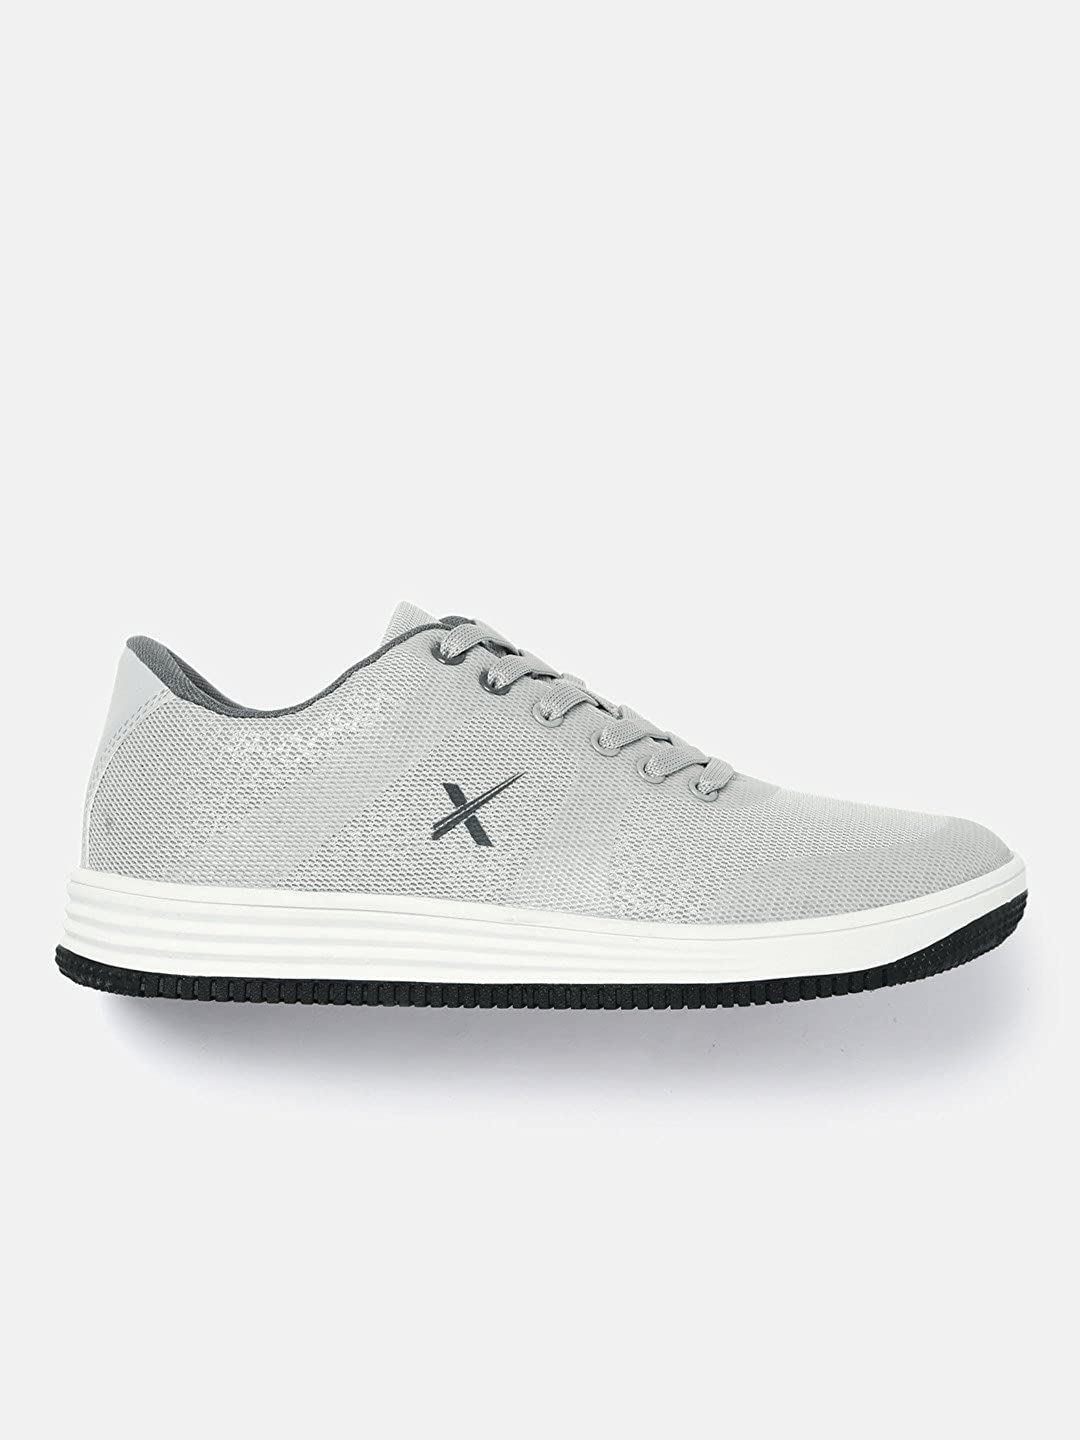 hrx casual shoes for men, OFF 74%,Buy!